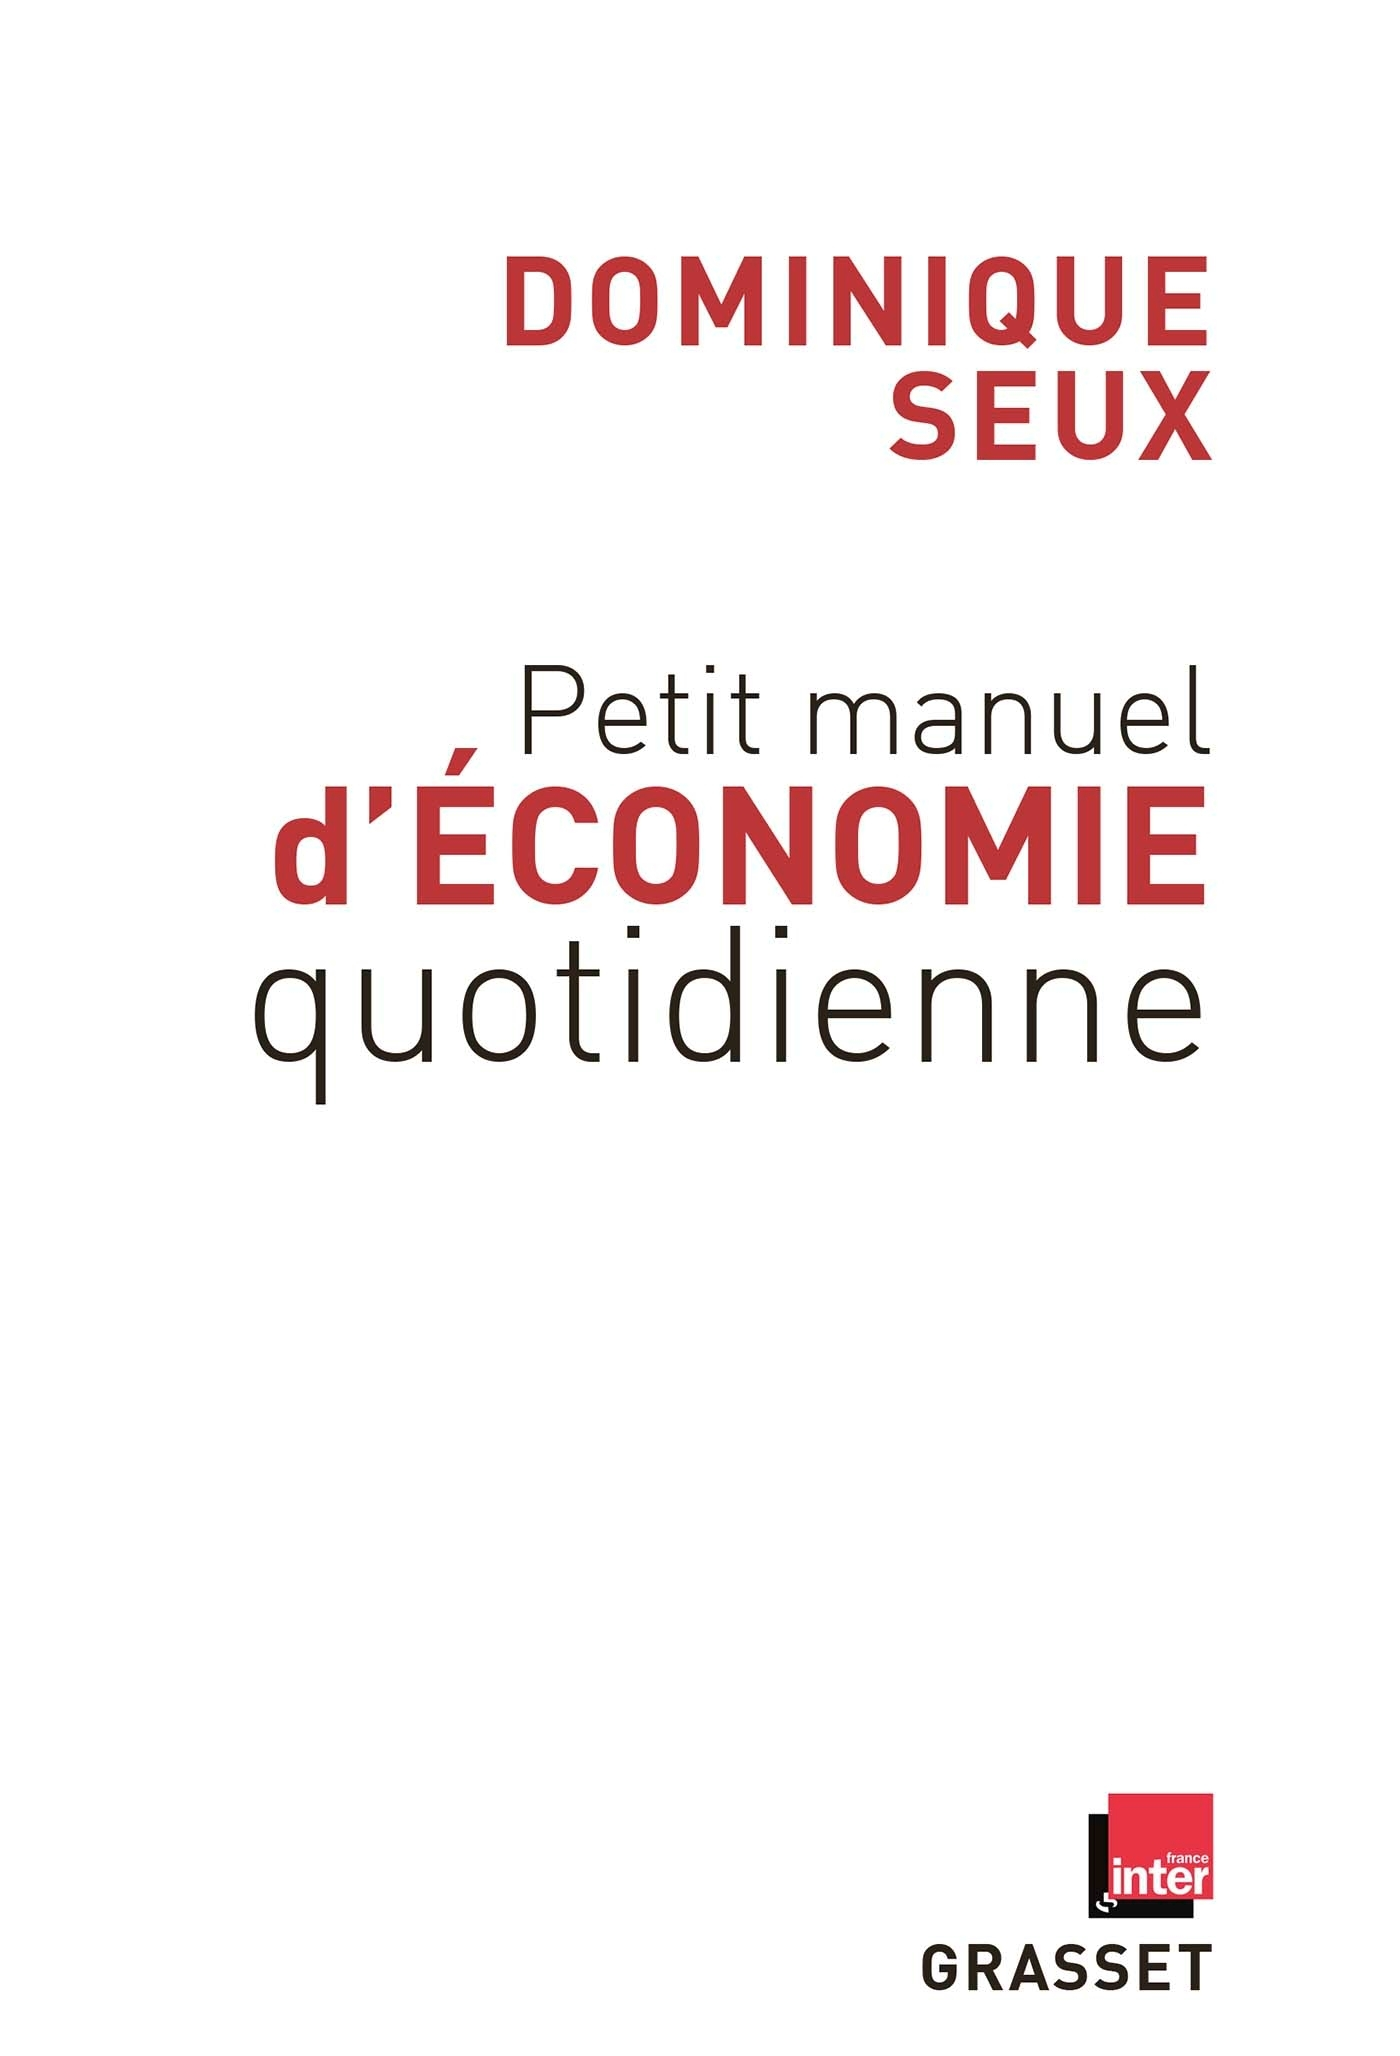 PETIT MANUEL D'ECONOMIE QUOTIDIENNE - EN COEDITION AVEC FRANCE INTER